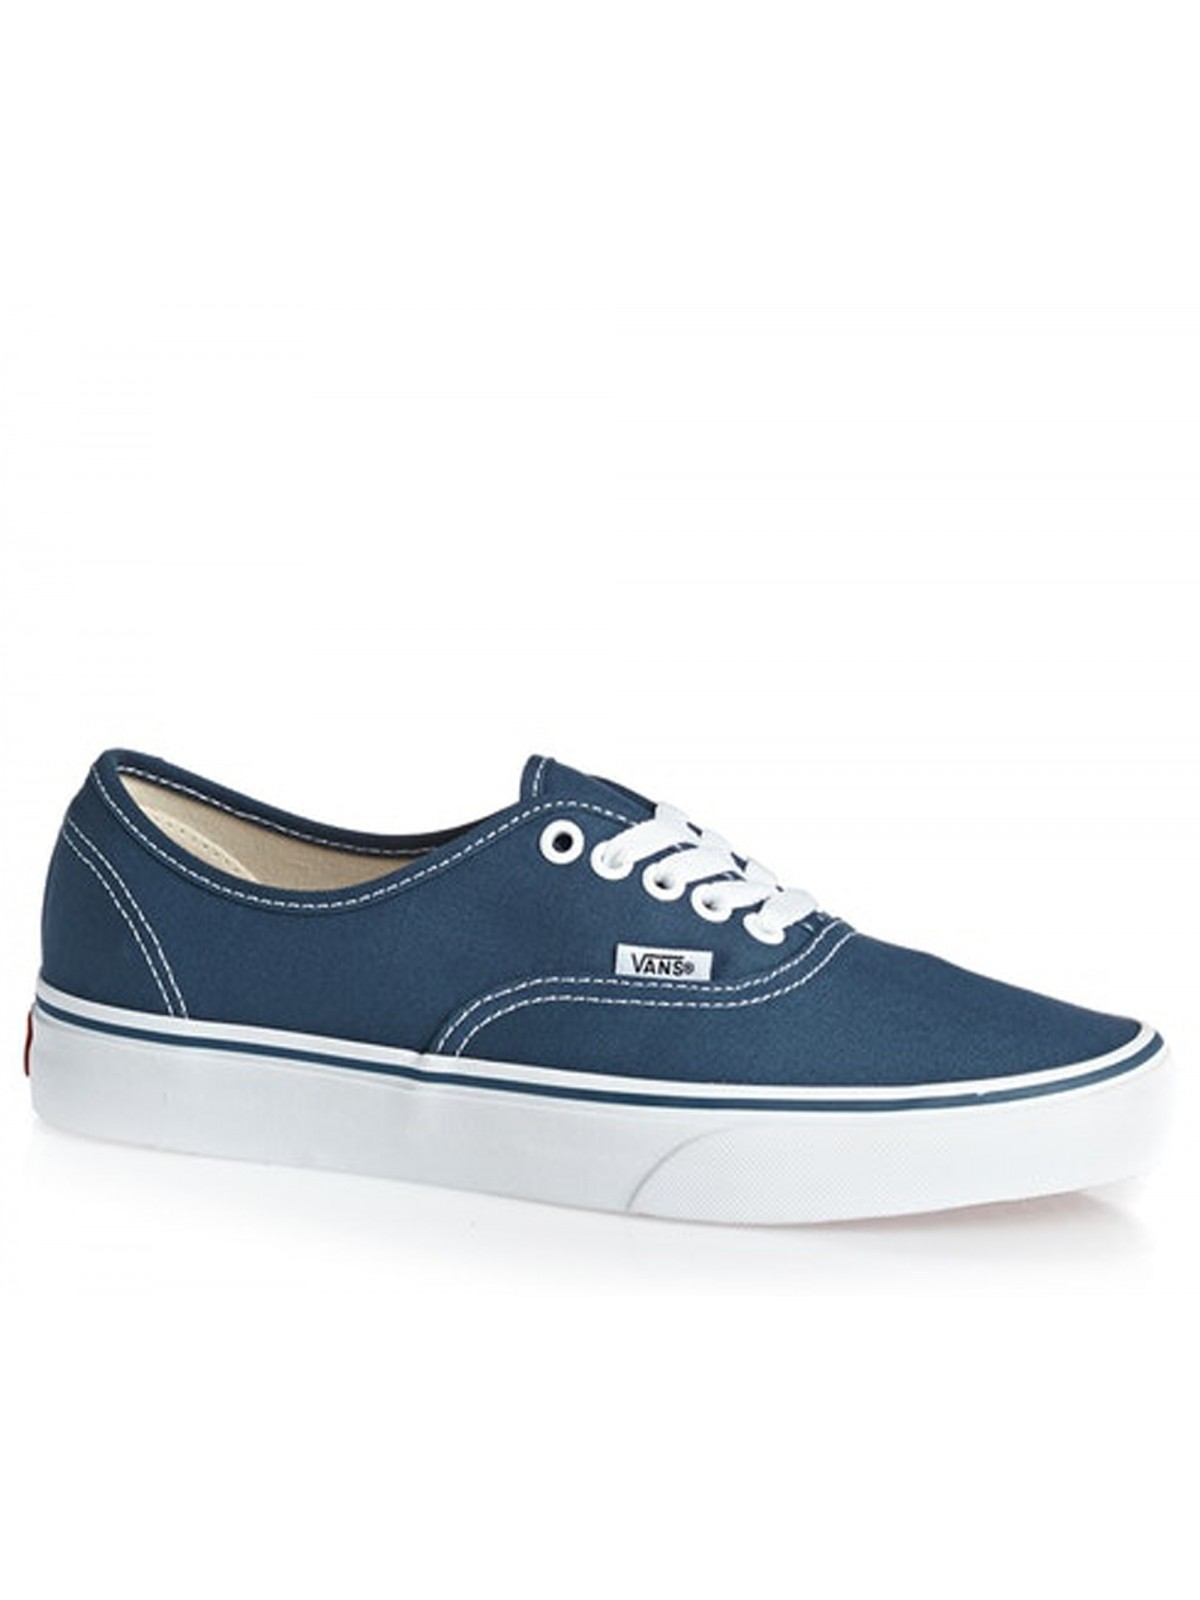 Vans Authentic toile navy